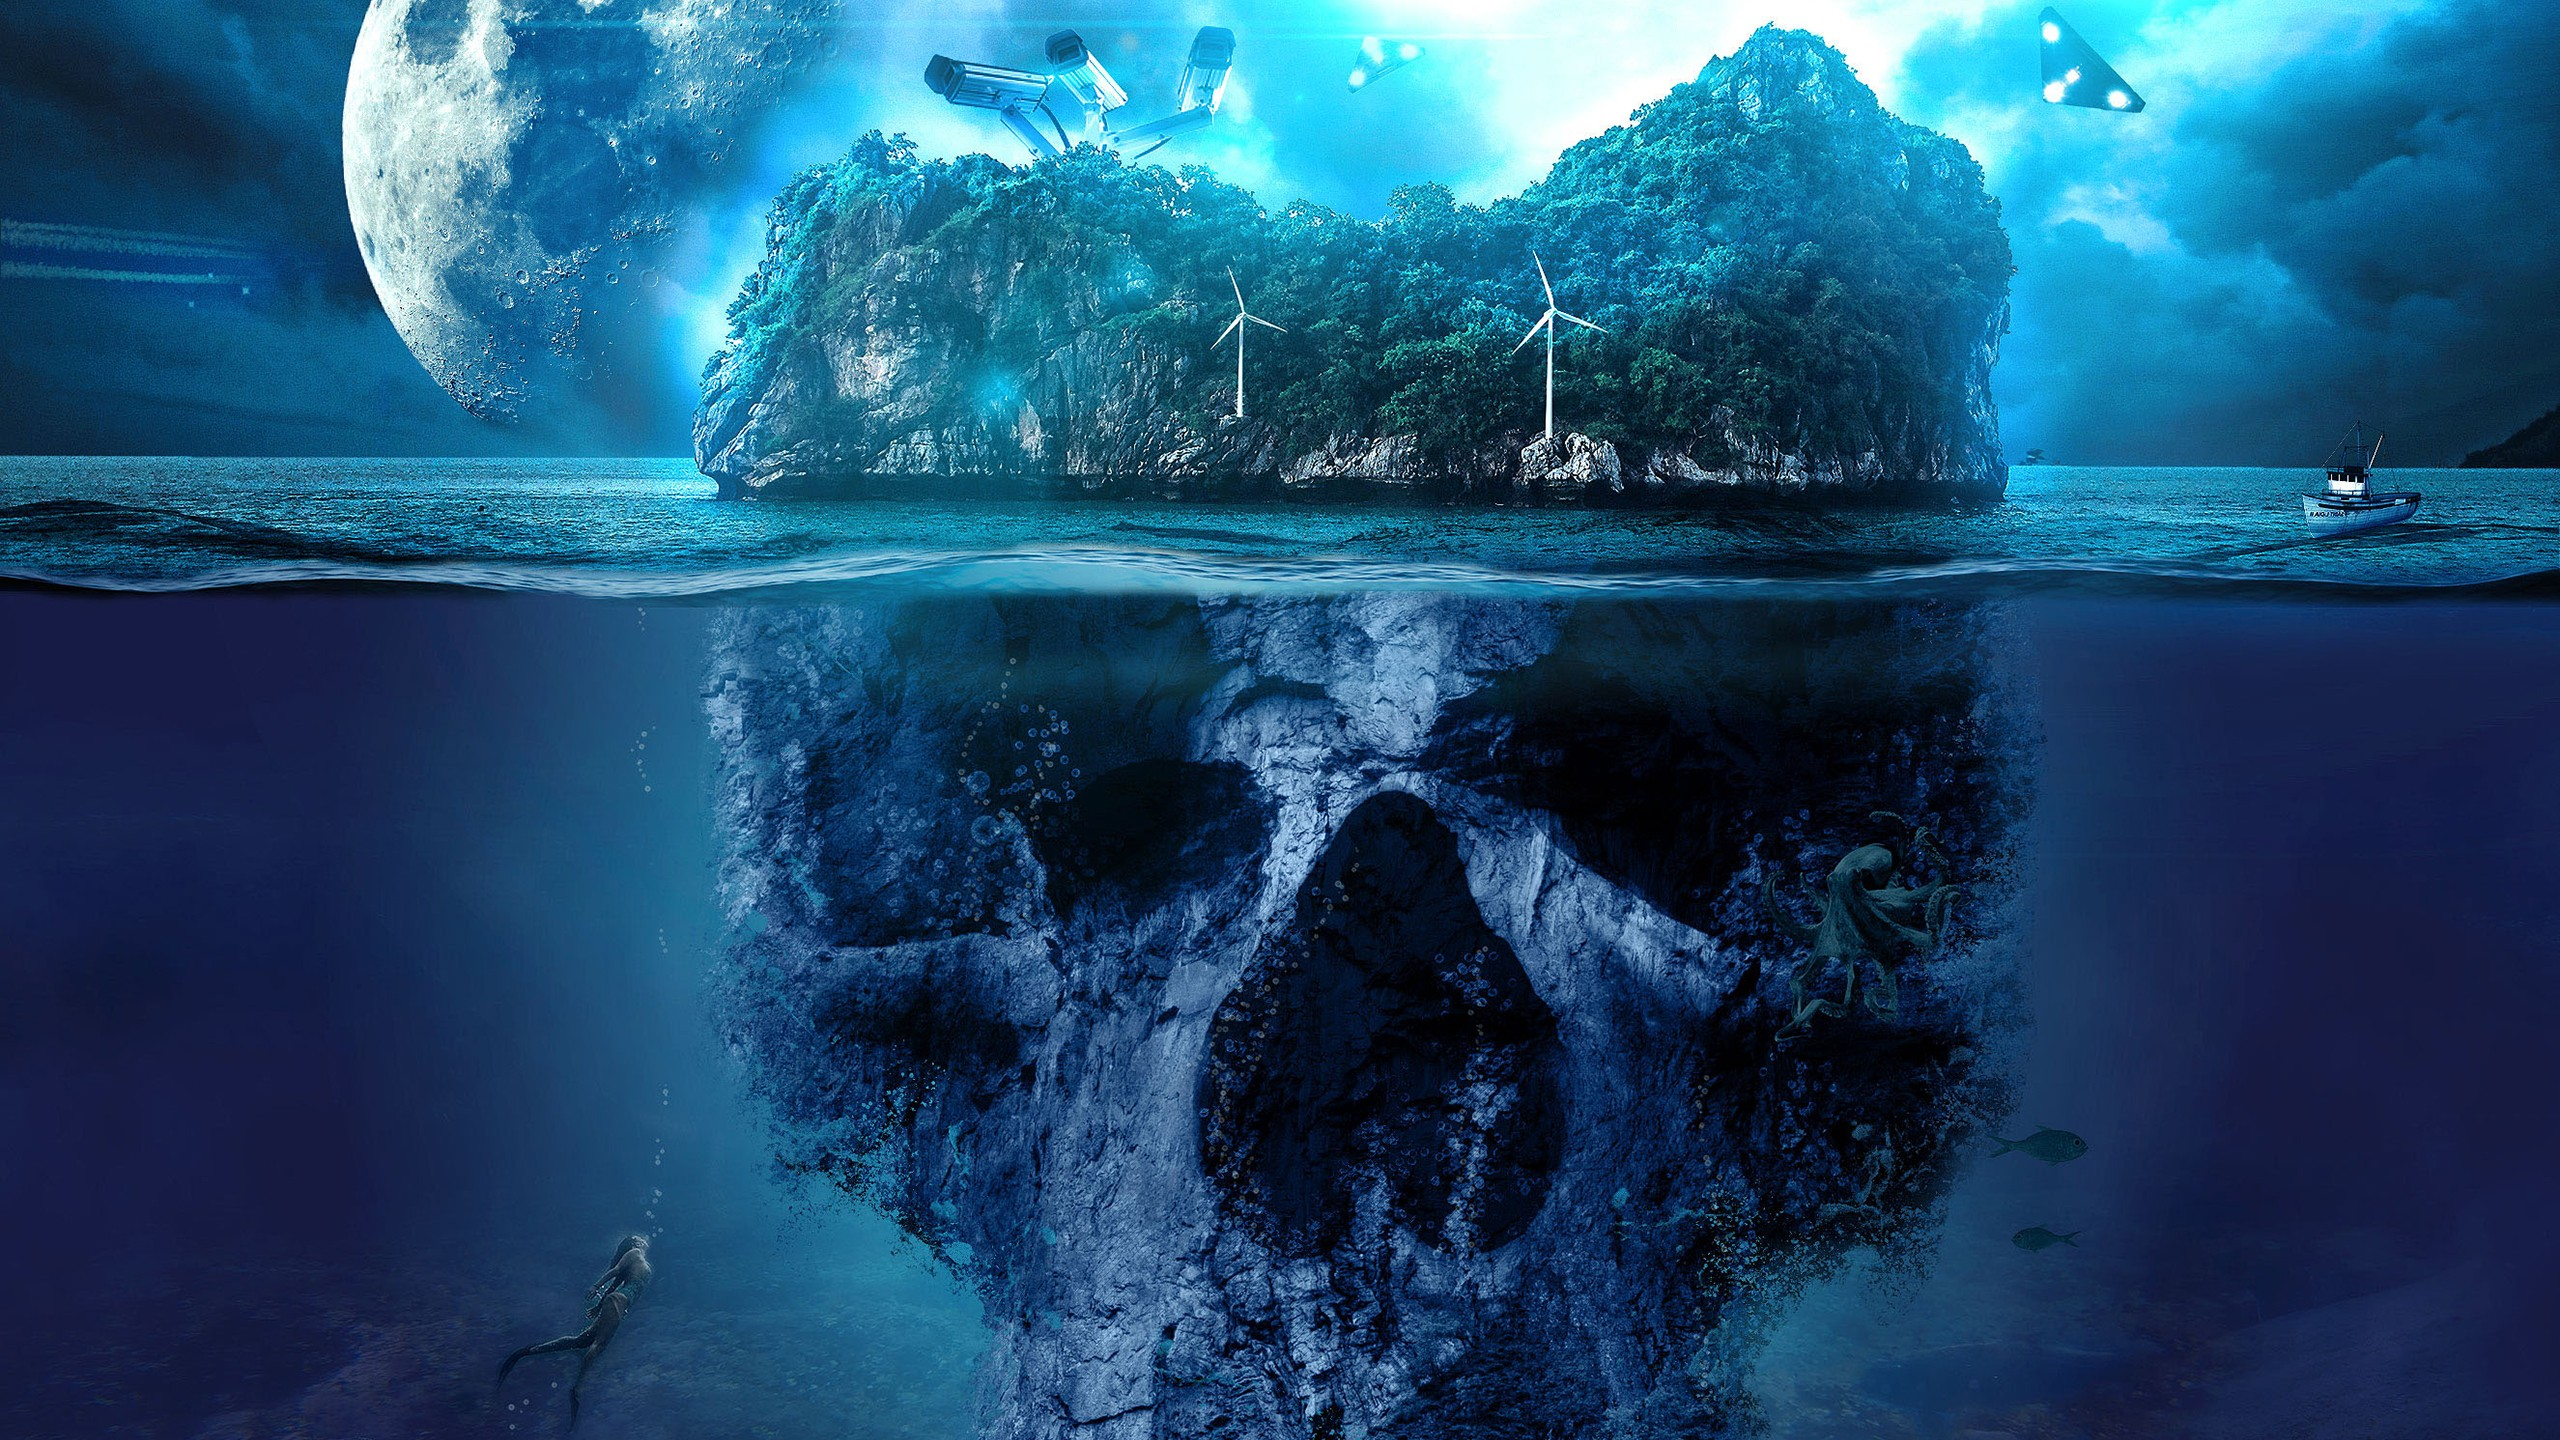 Iphone Wallpaper Waterfall Mystery Skull Island Wallpapers Hd Wallpapers Id 27263